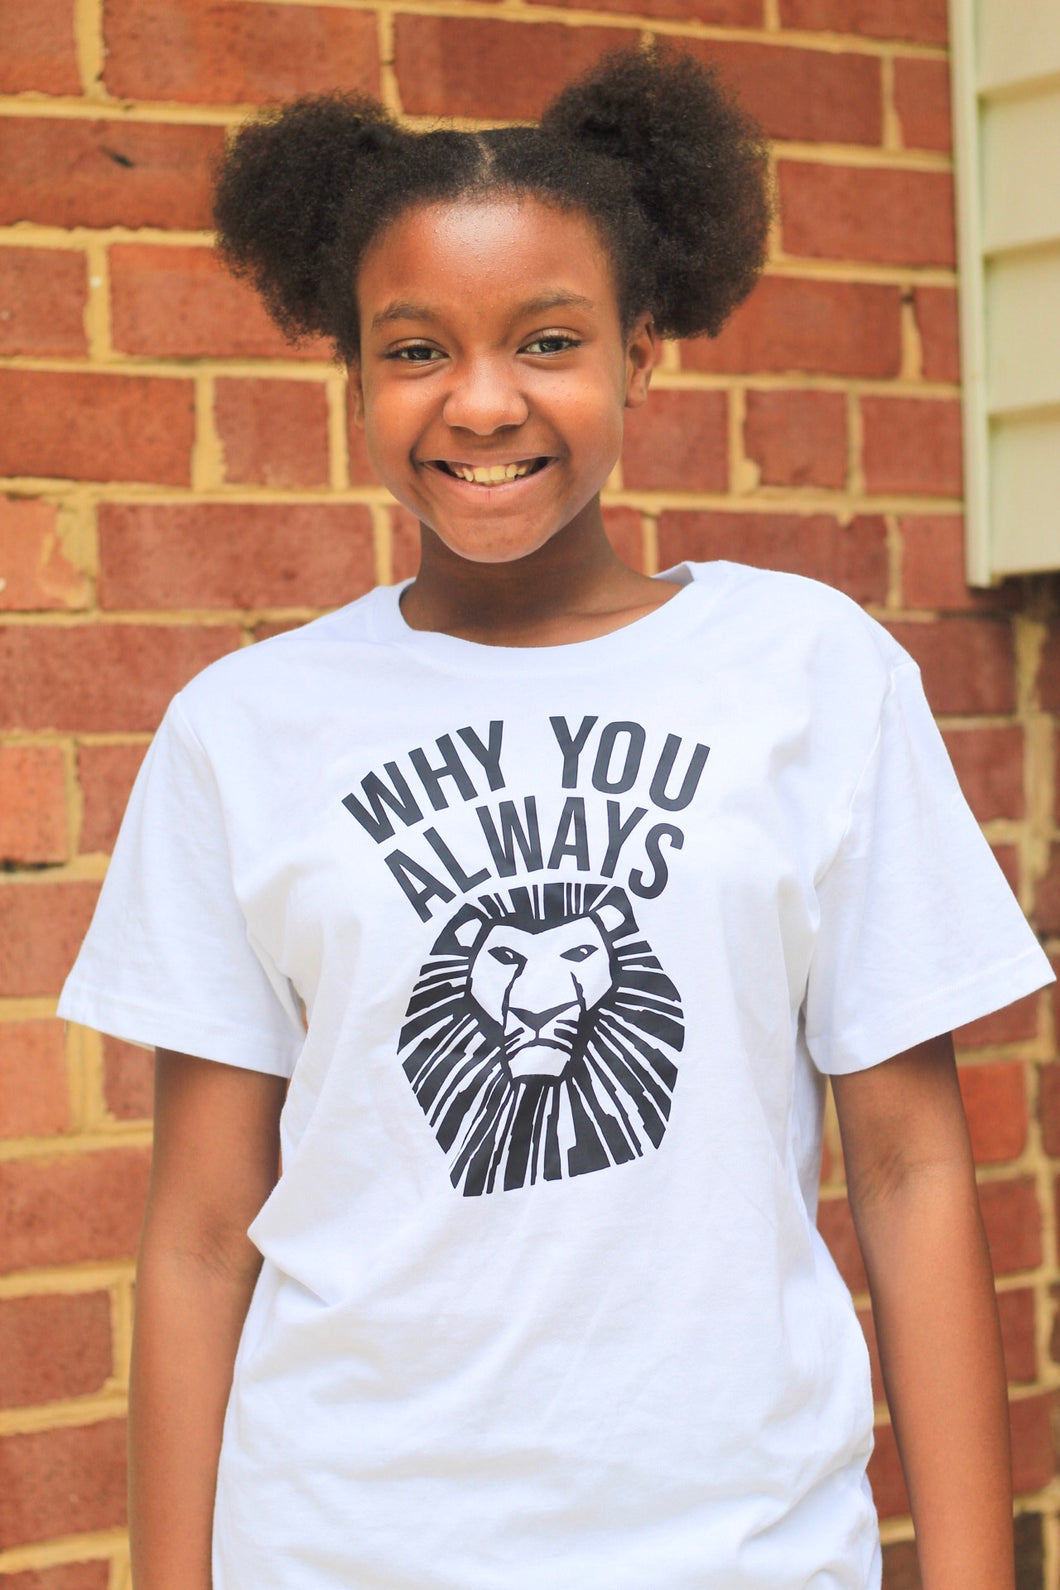 Why You Always Lion Adults Shirt